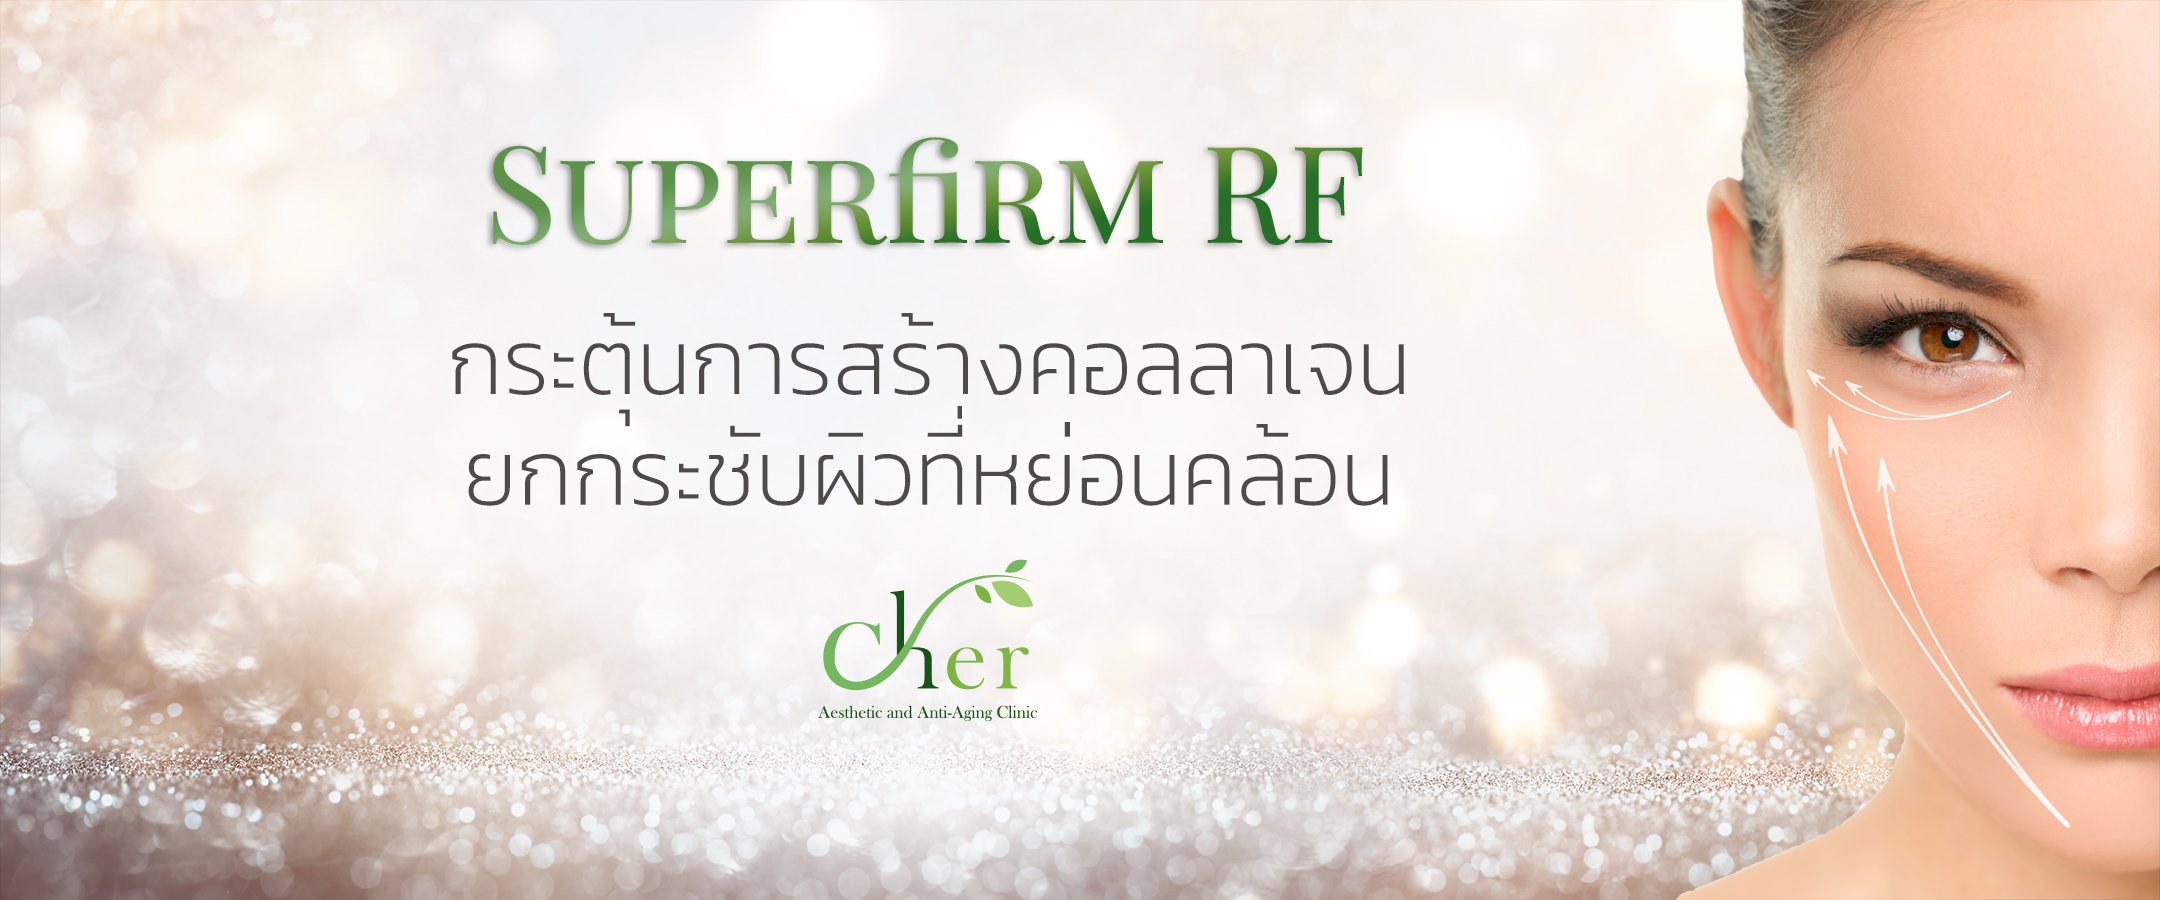 superfirm RF L copy.jpg